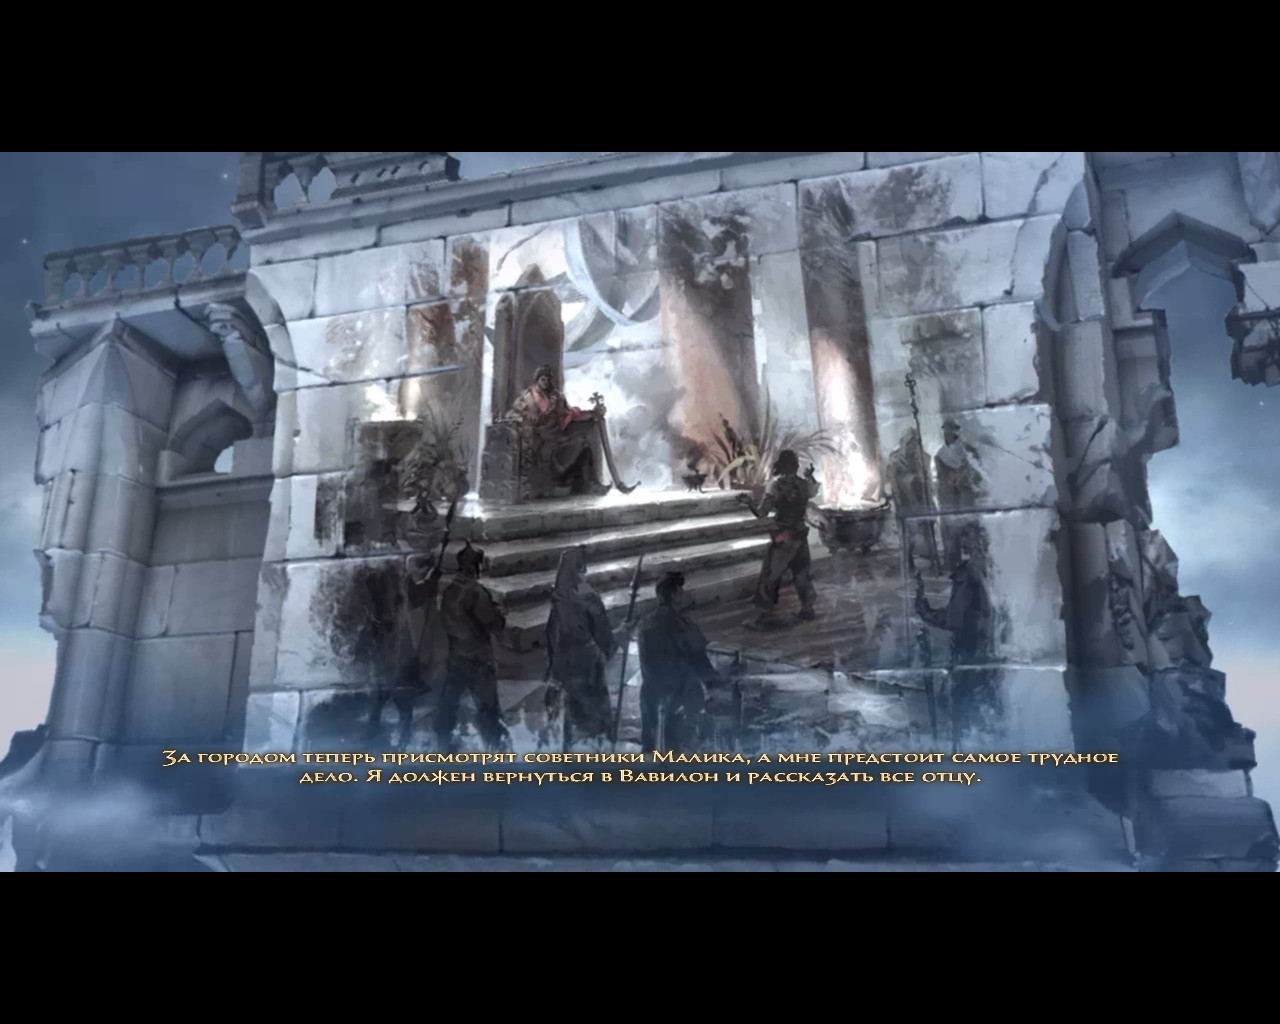 Prince of Persia 2014-06-04 20-33-59-81.jpg - Prince of Persia: The Forgotten Sands